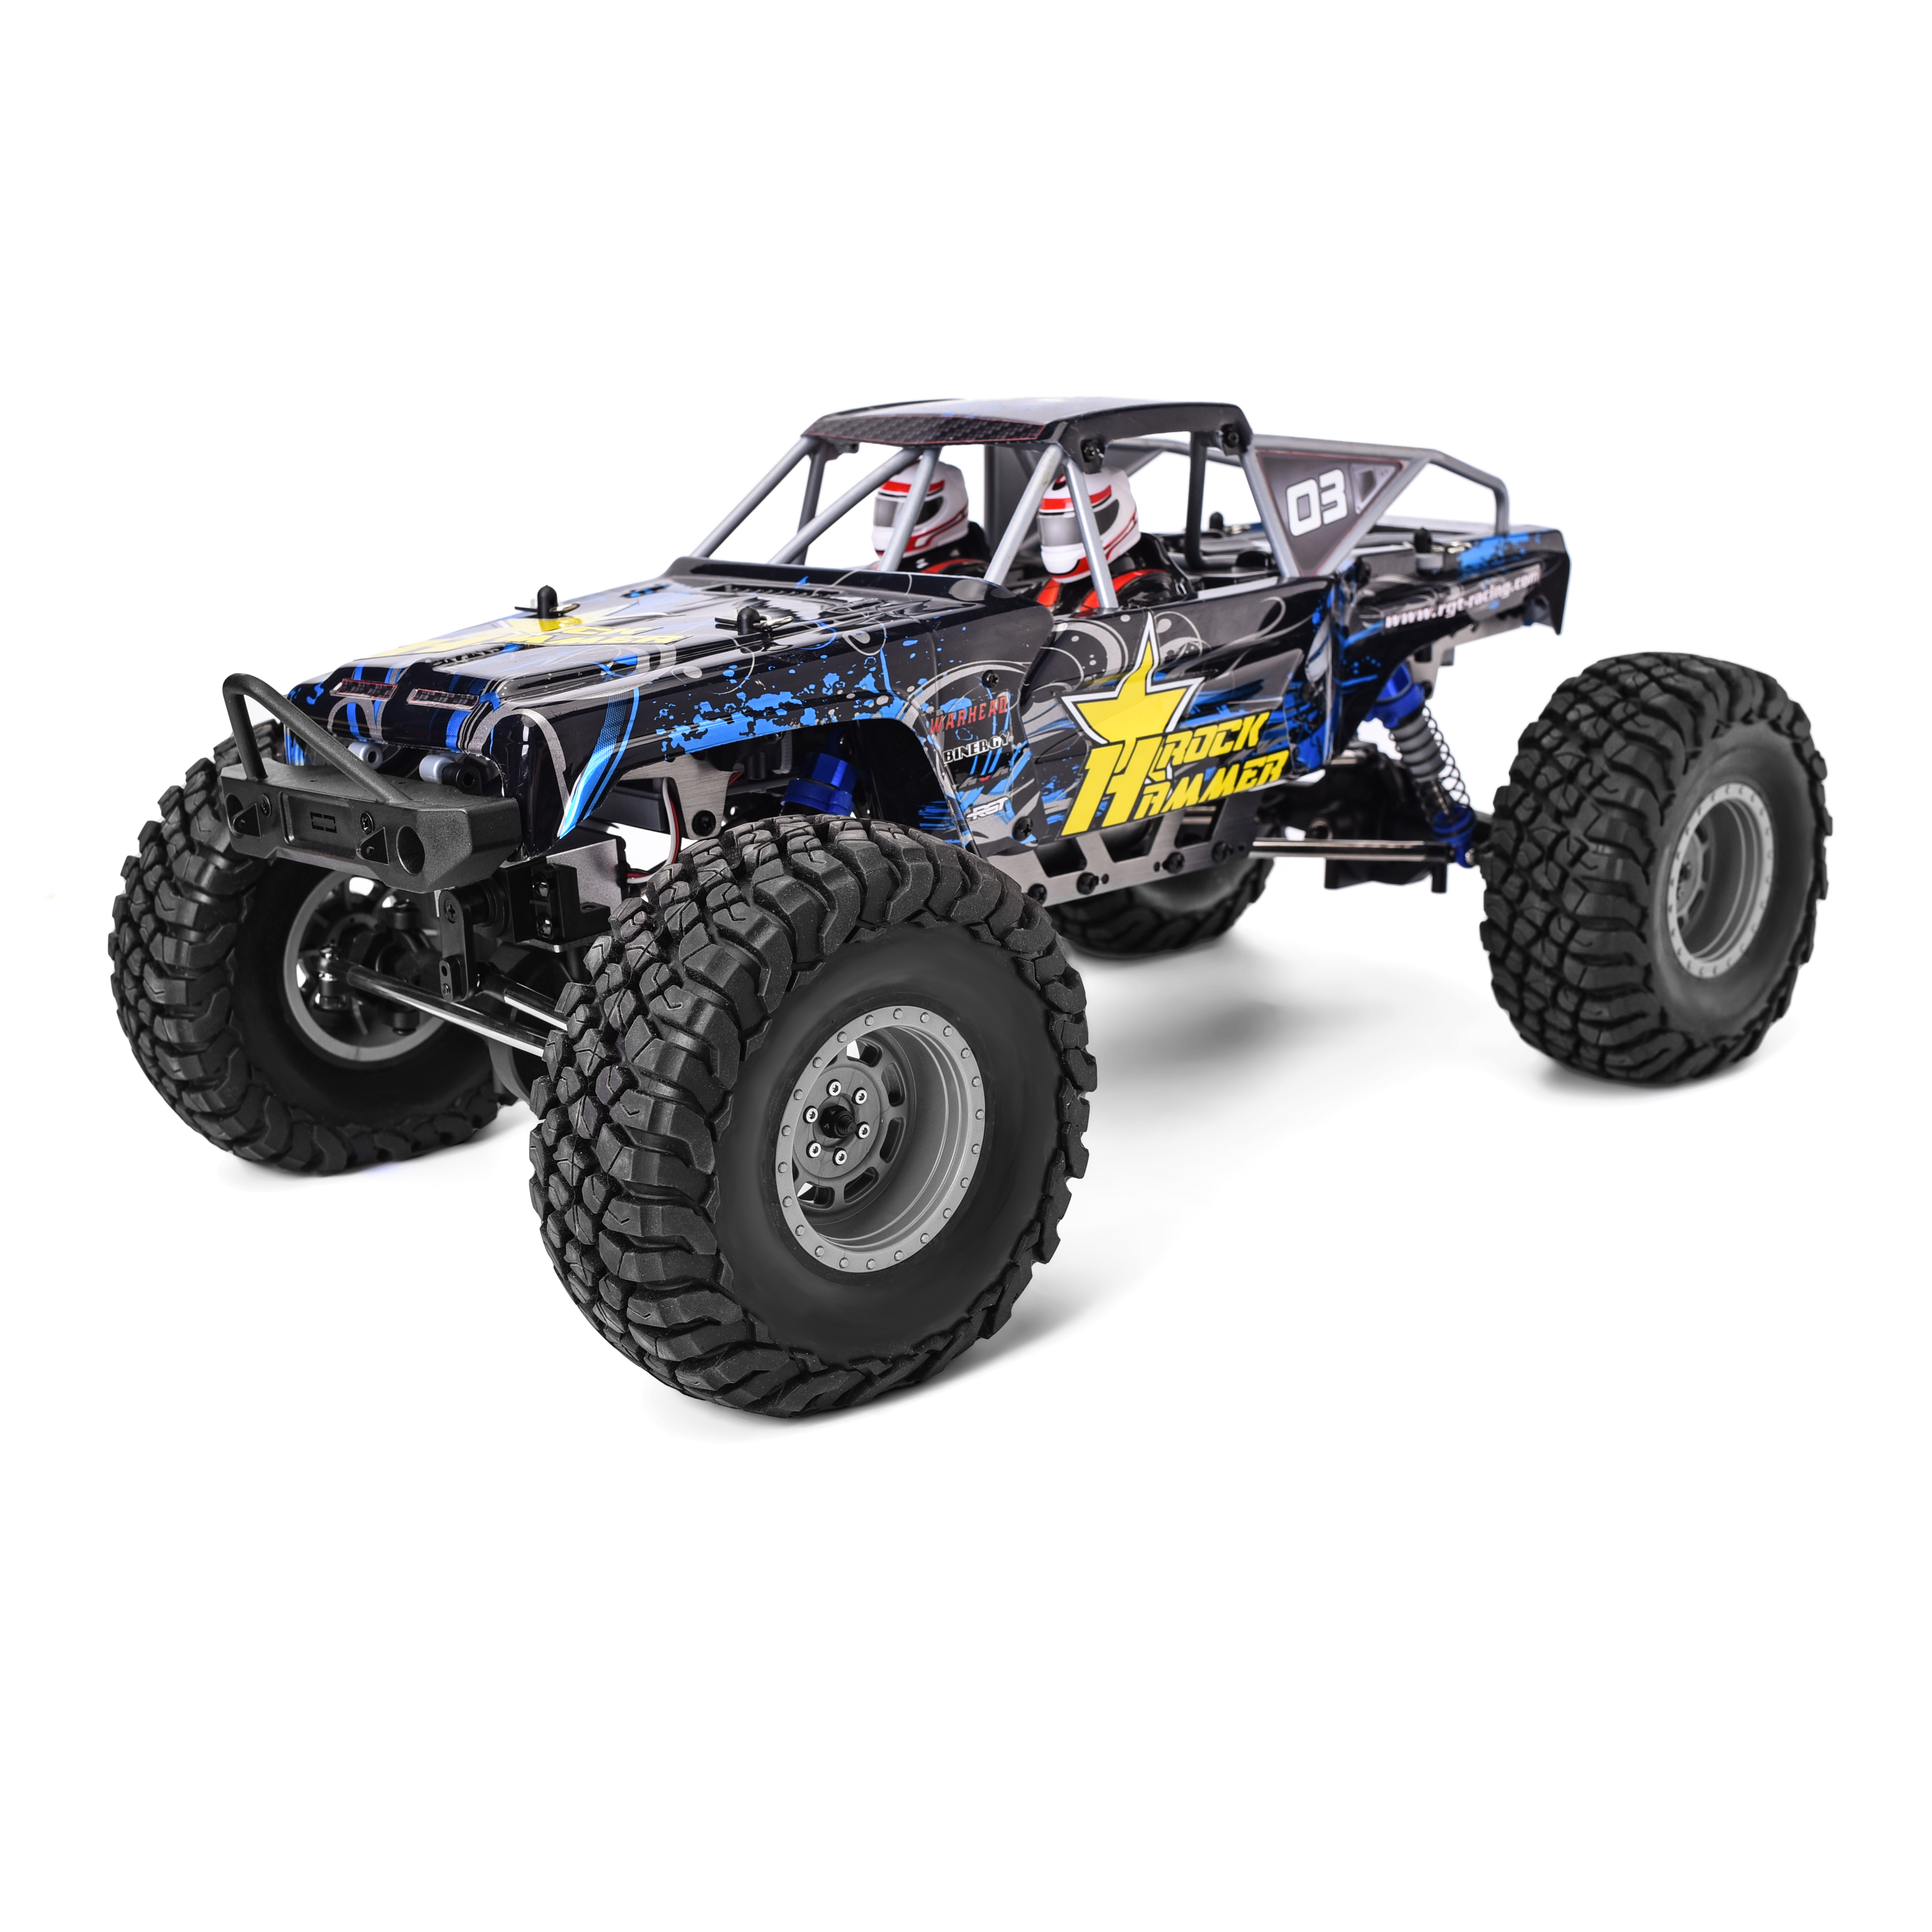 rgt racing 1 10 scale electric rc car 4wd off road rock crawler climbing remote ebay. Black Bedroom Furniture Sets. Home Design Ideas